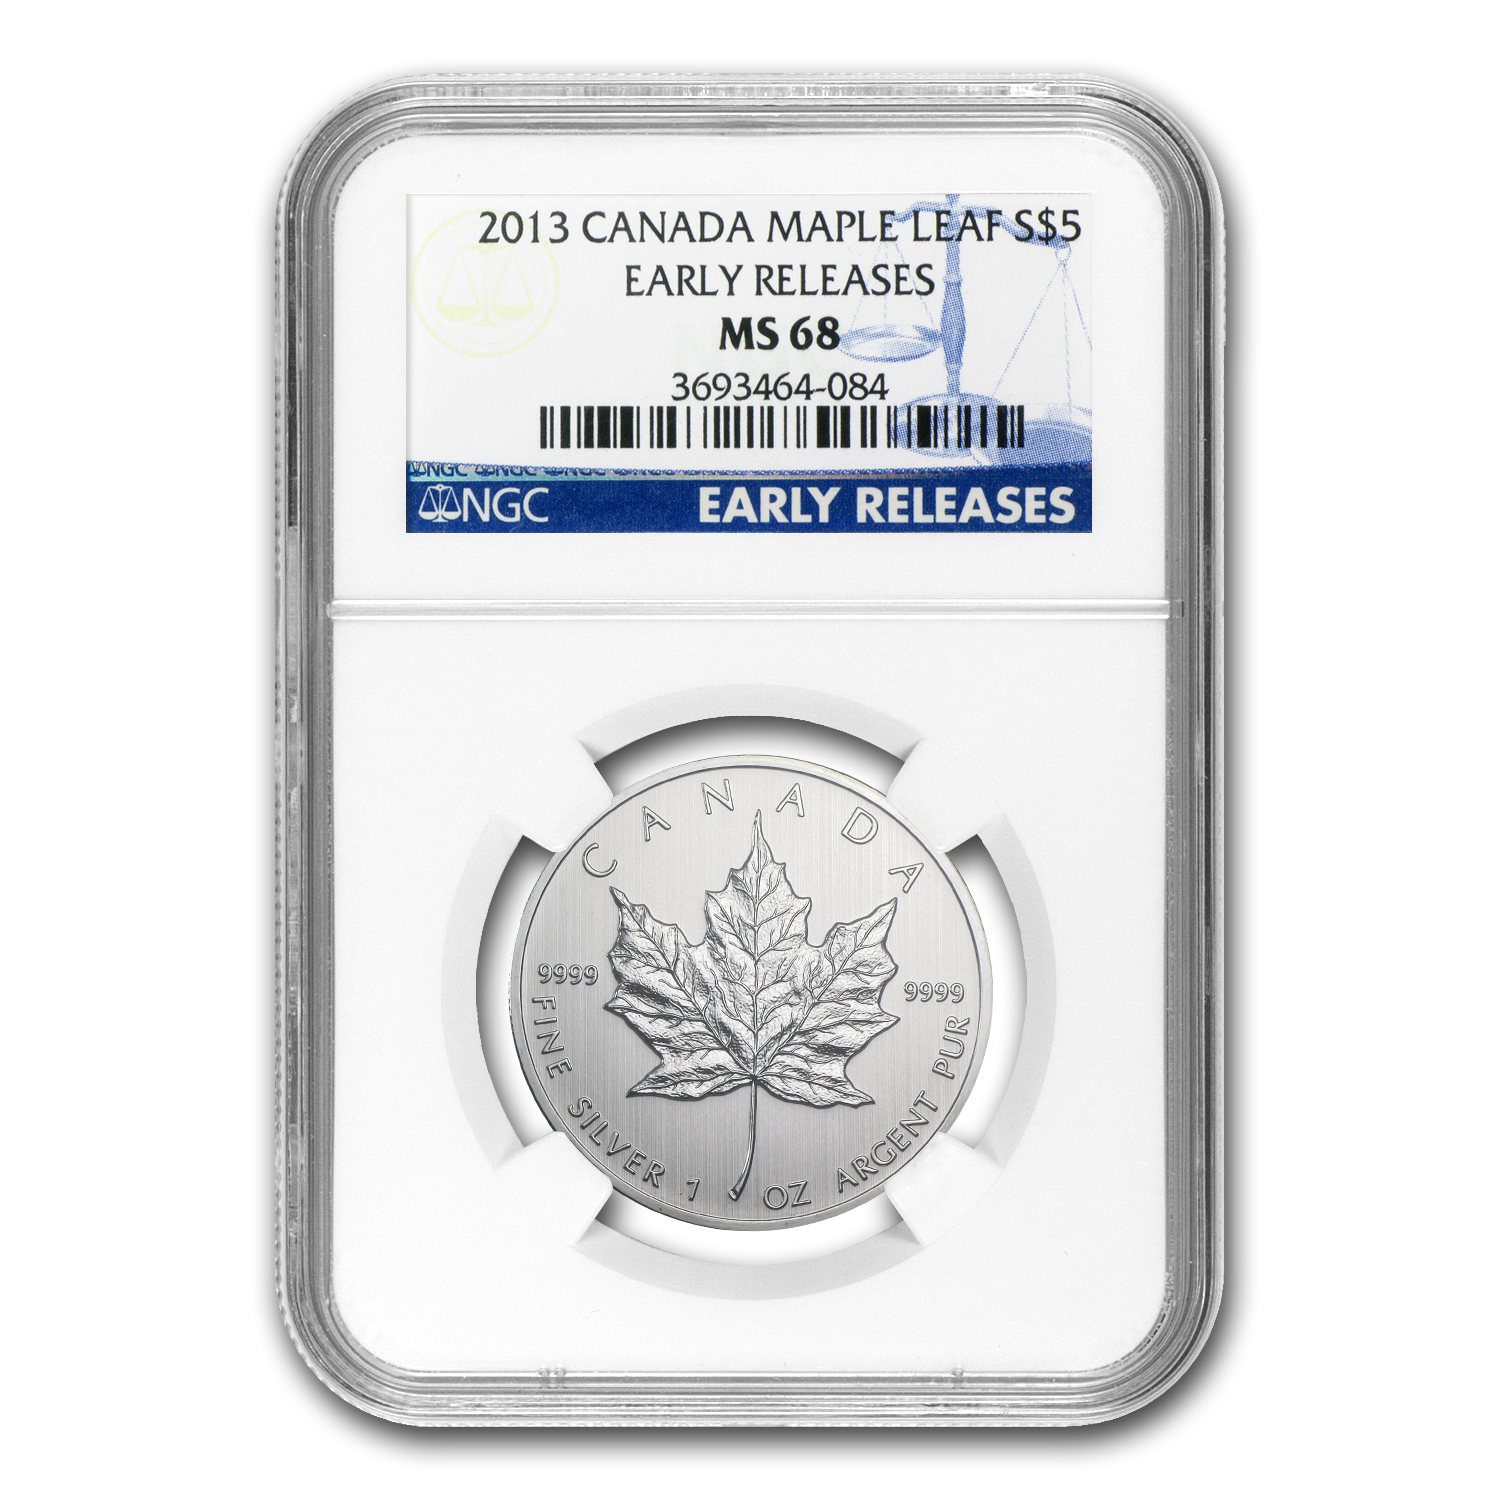 2013 1 oz Silver Canadian Maple Leaf MS-68 NGC Early Releases